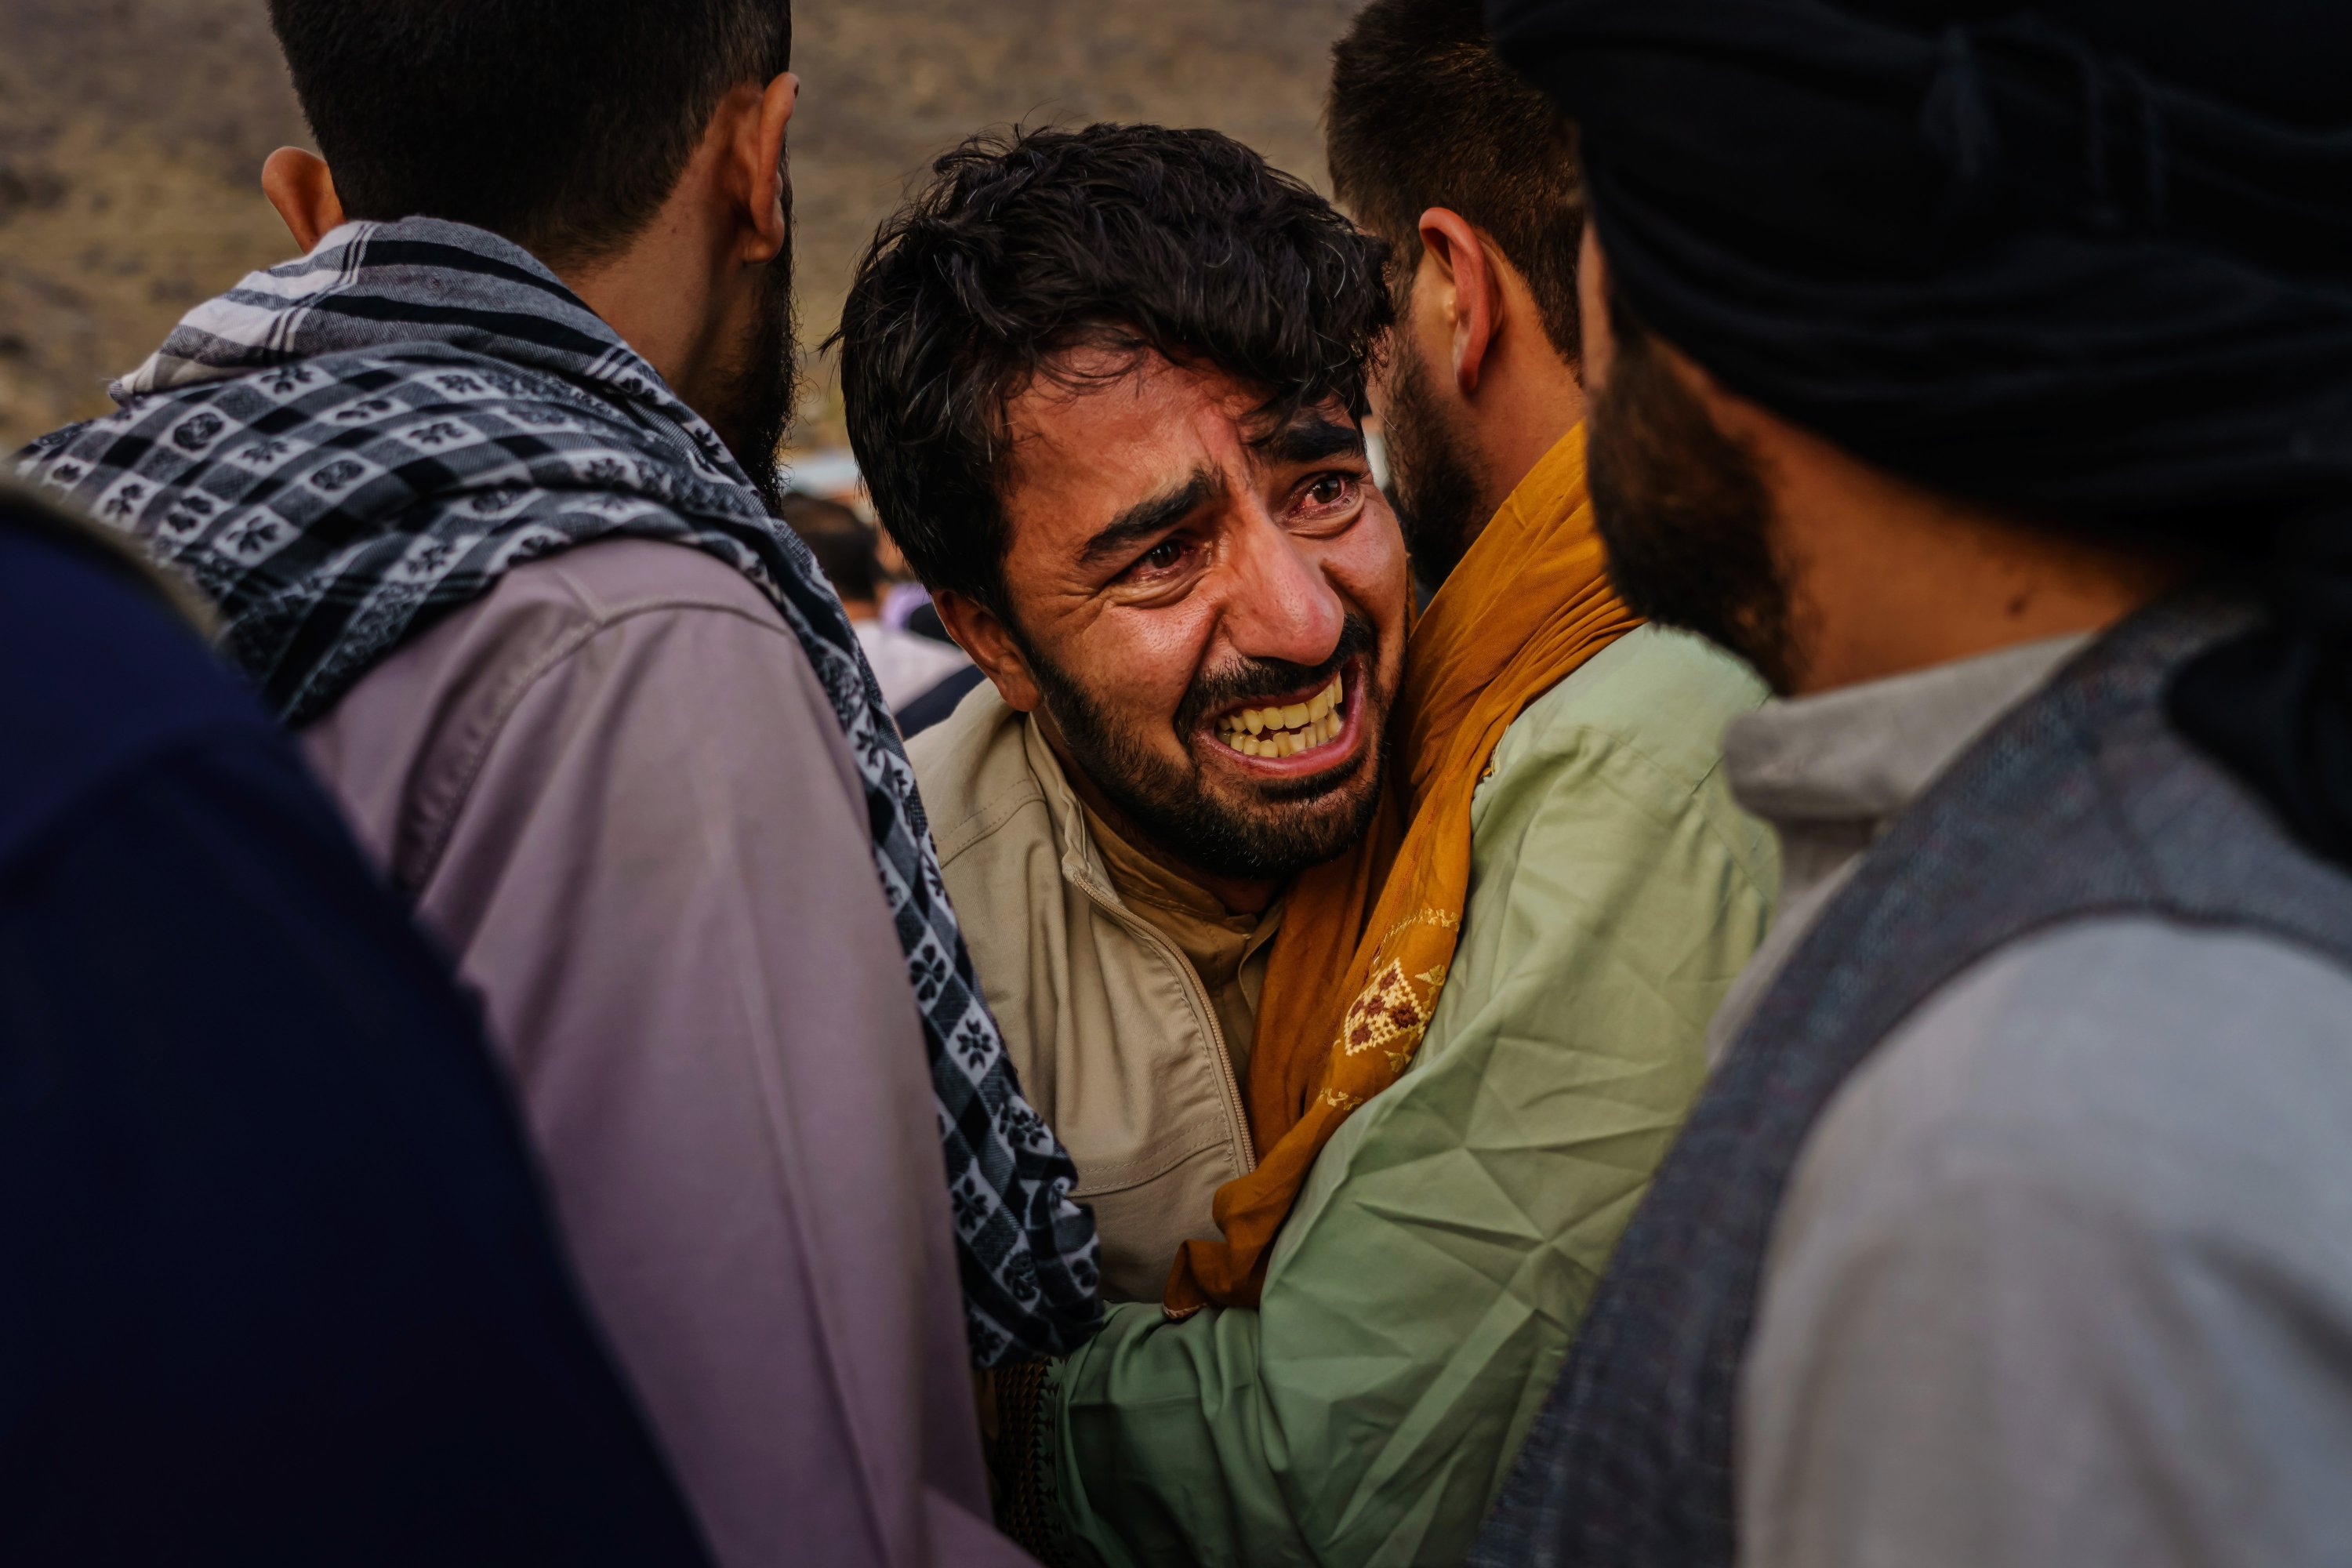 A man grieves during a mass funeral for members of a family was killed in a U.S. drone airstrike, in Kabul, Afghanistan, Aug. 30, 2021. (Getty Images)